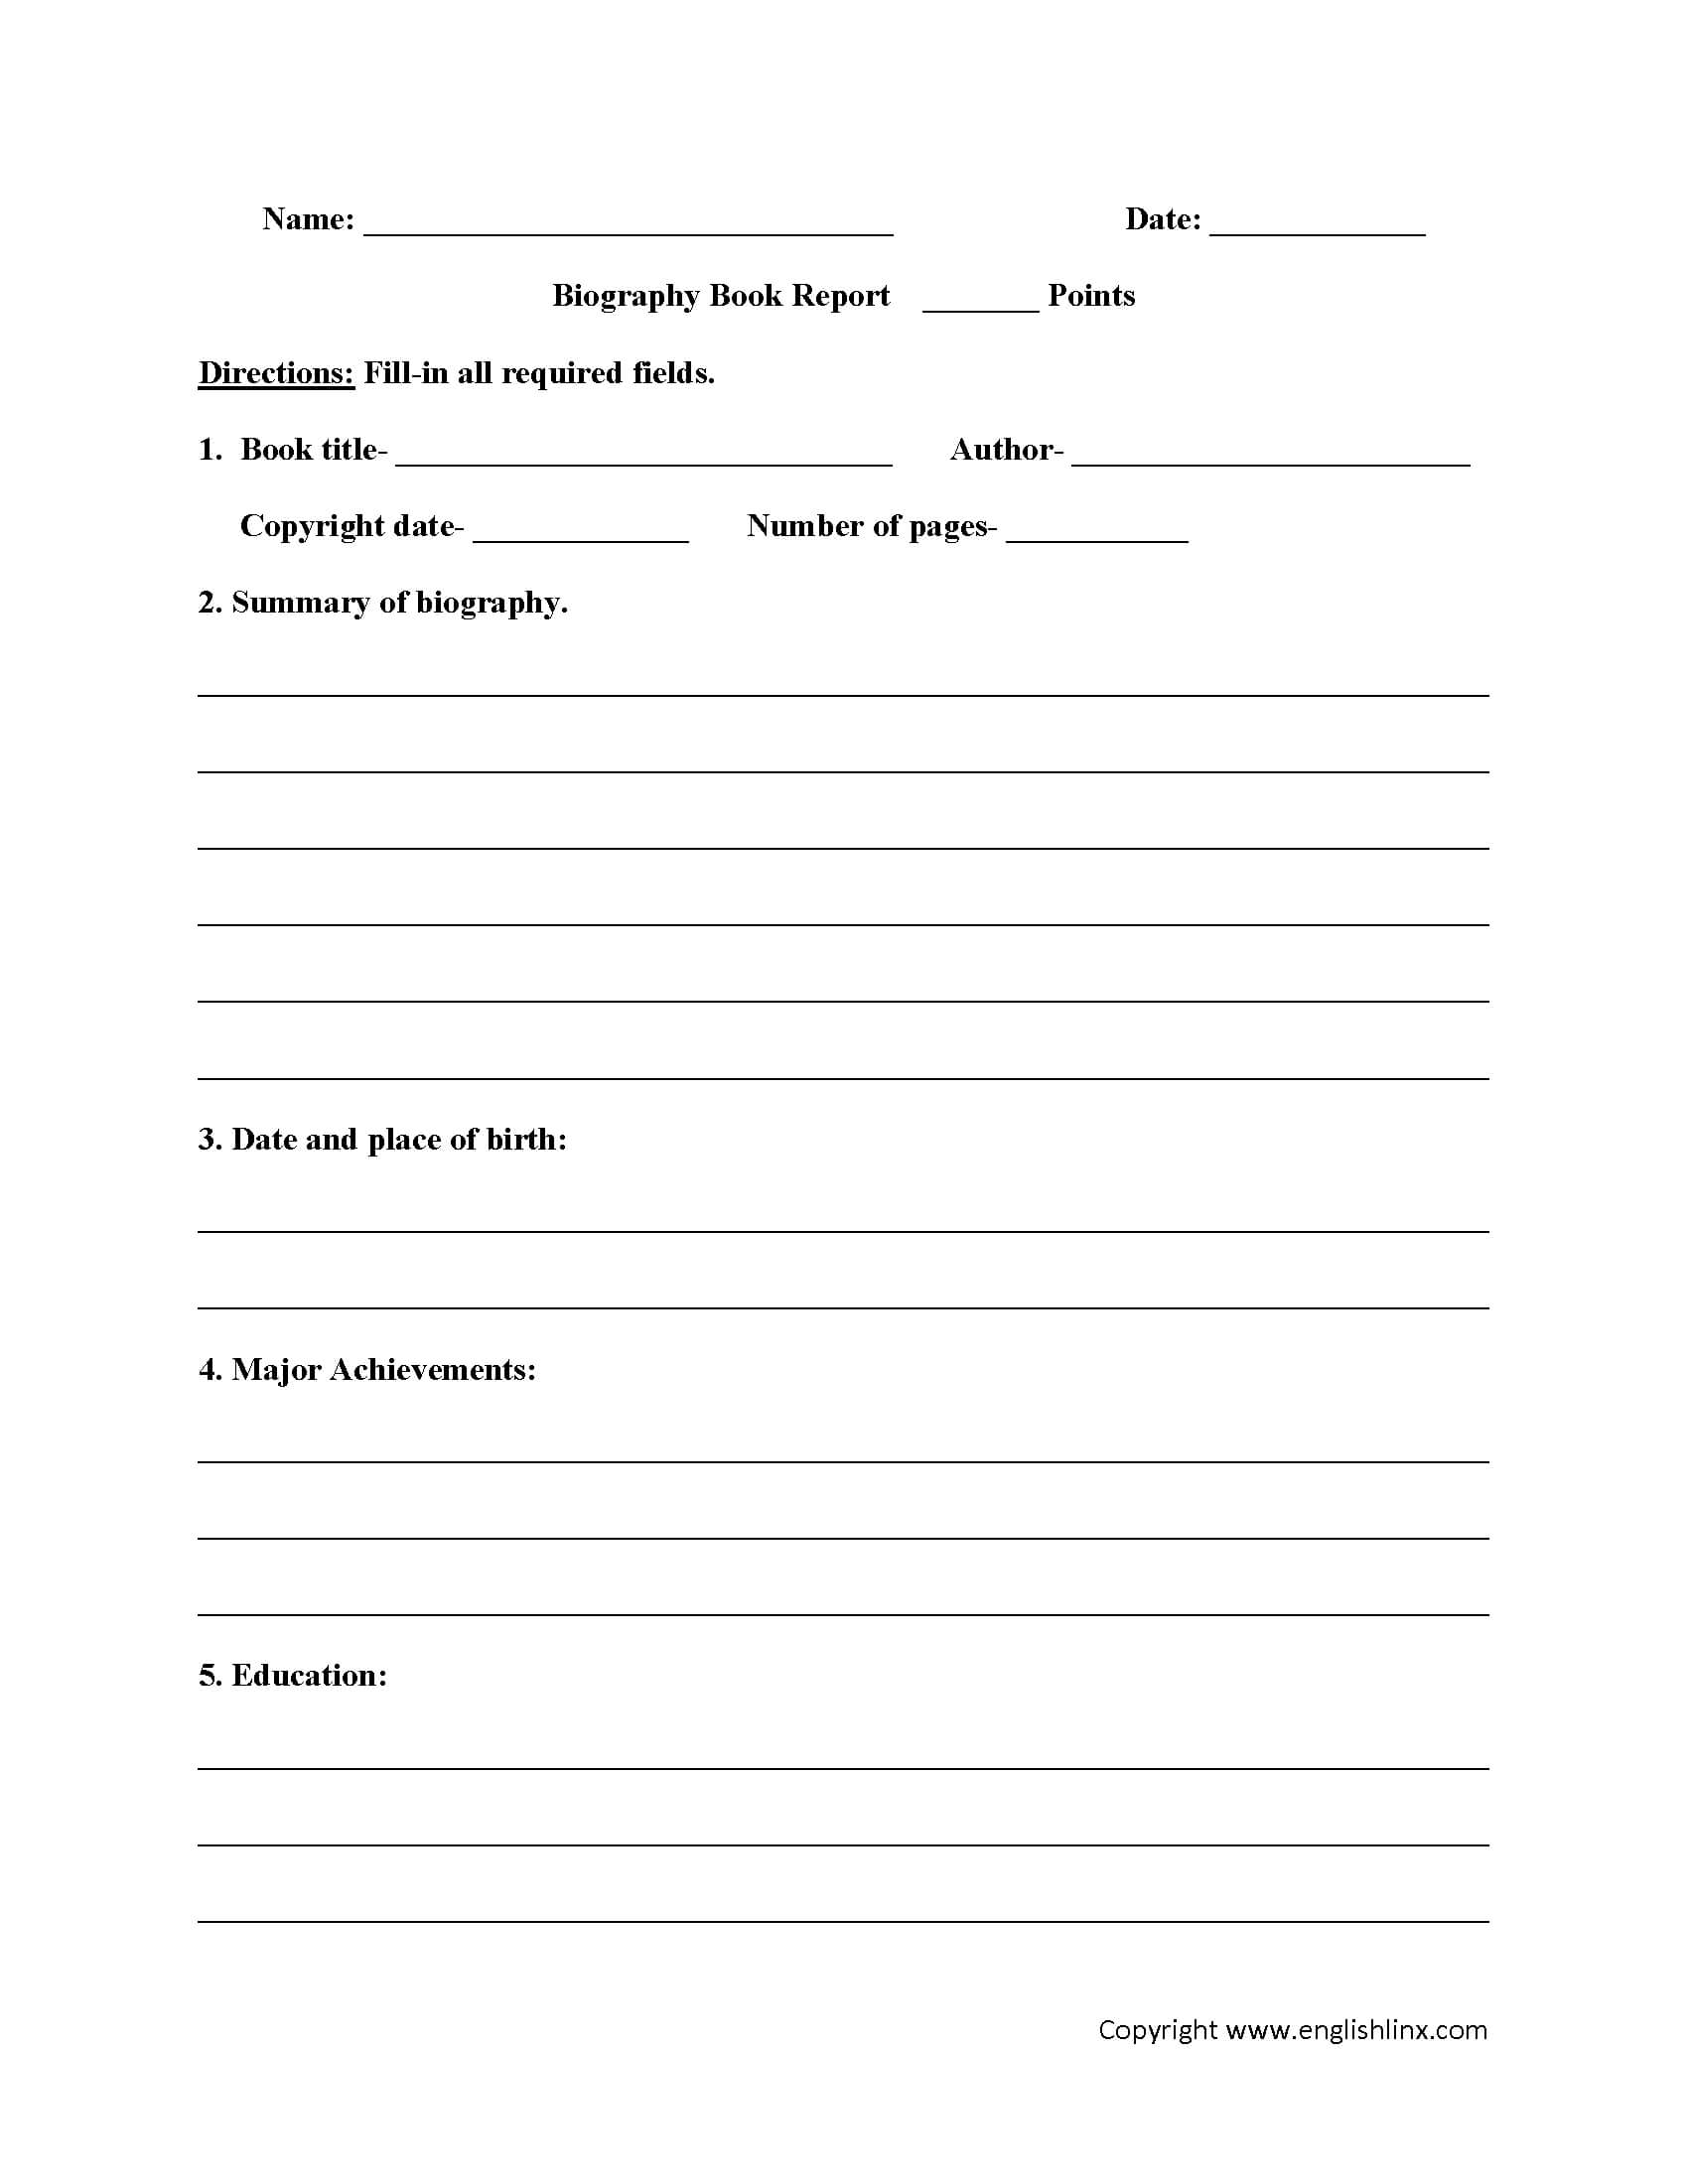 Book Report Worksheets | Biography Book Report Worksheets Regarding Biography Book Report Template